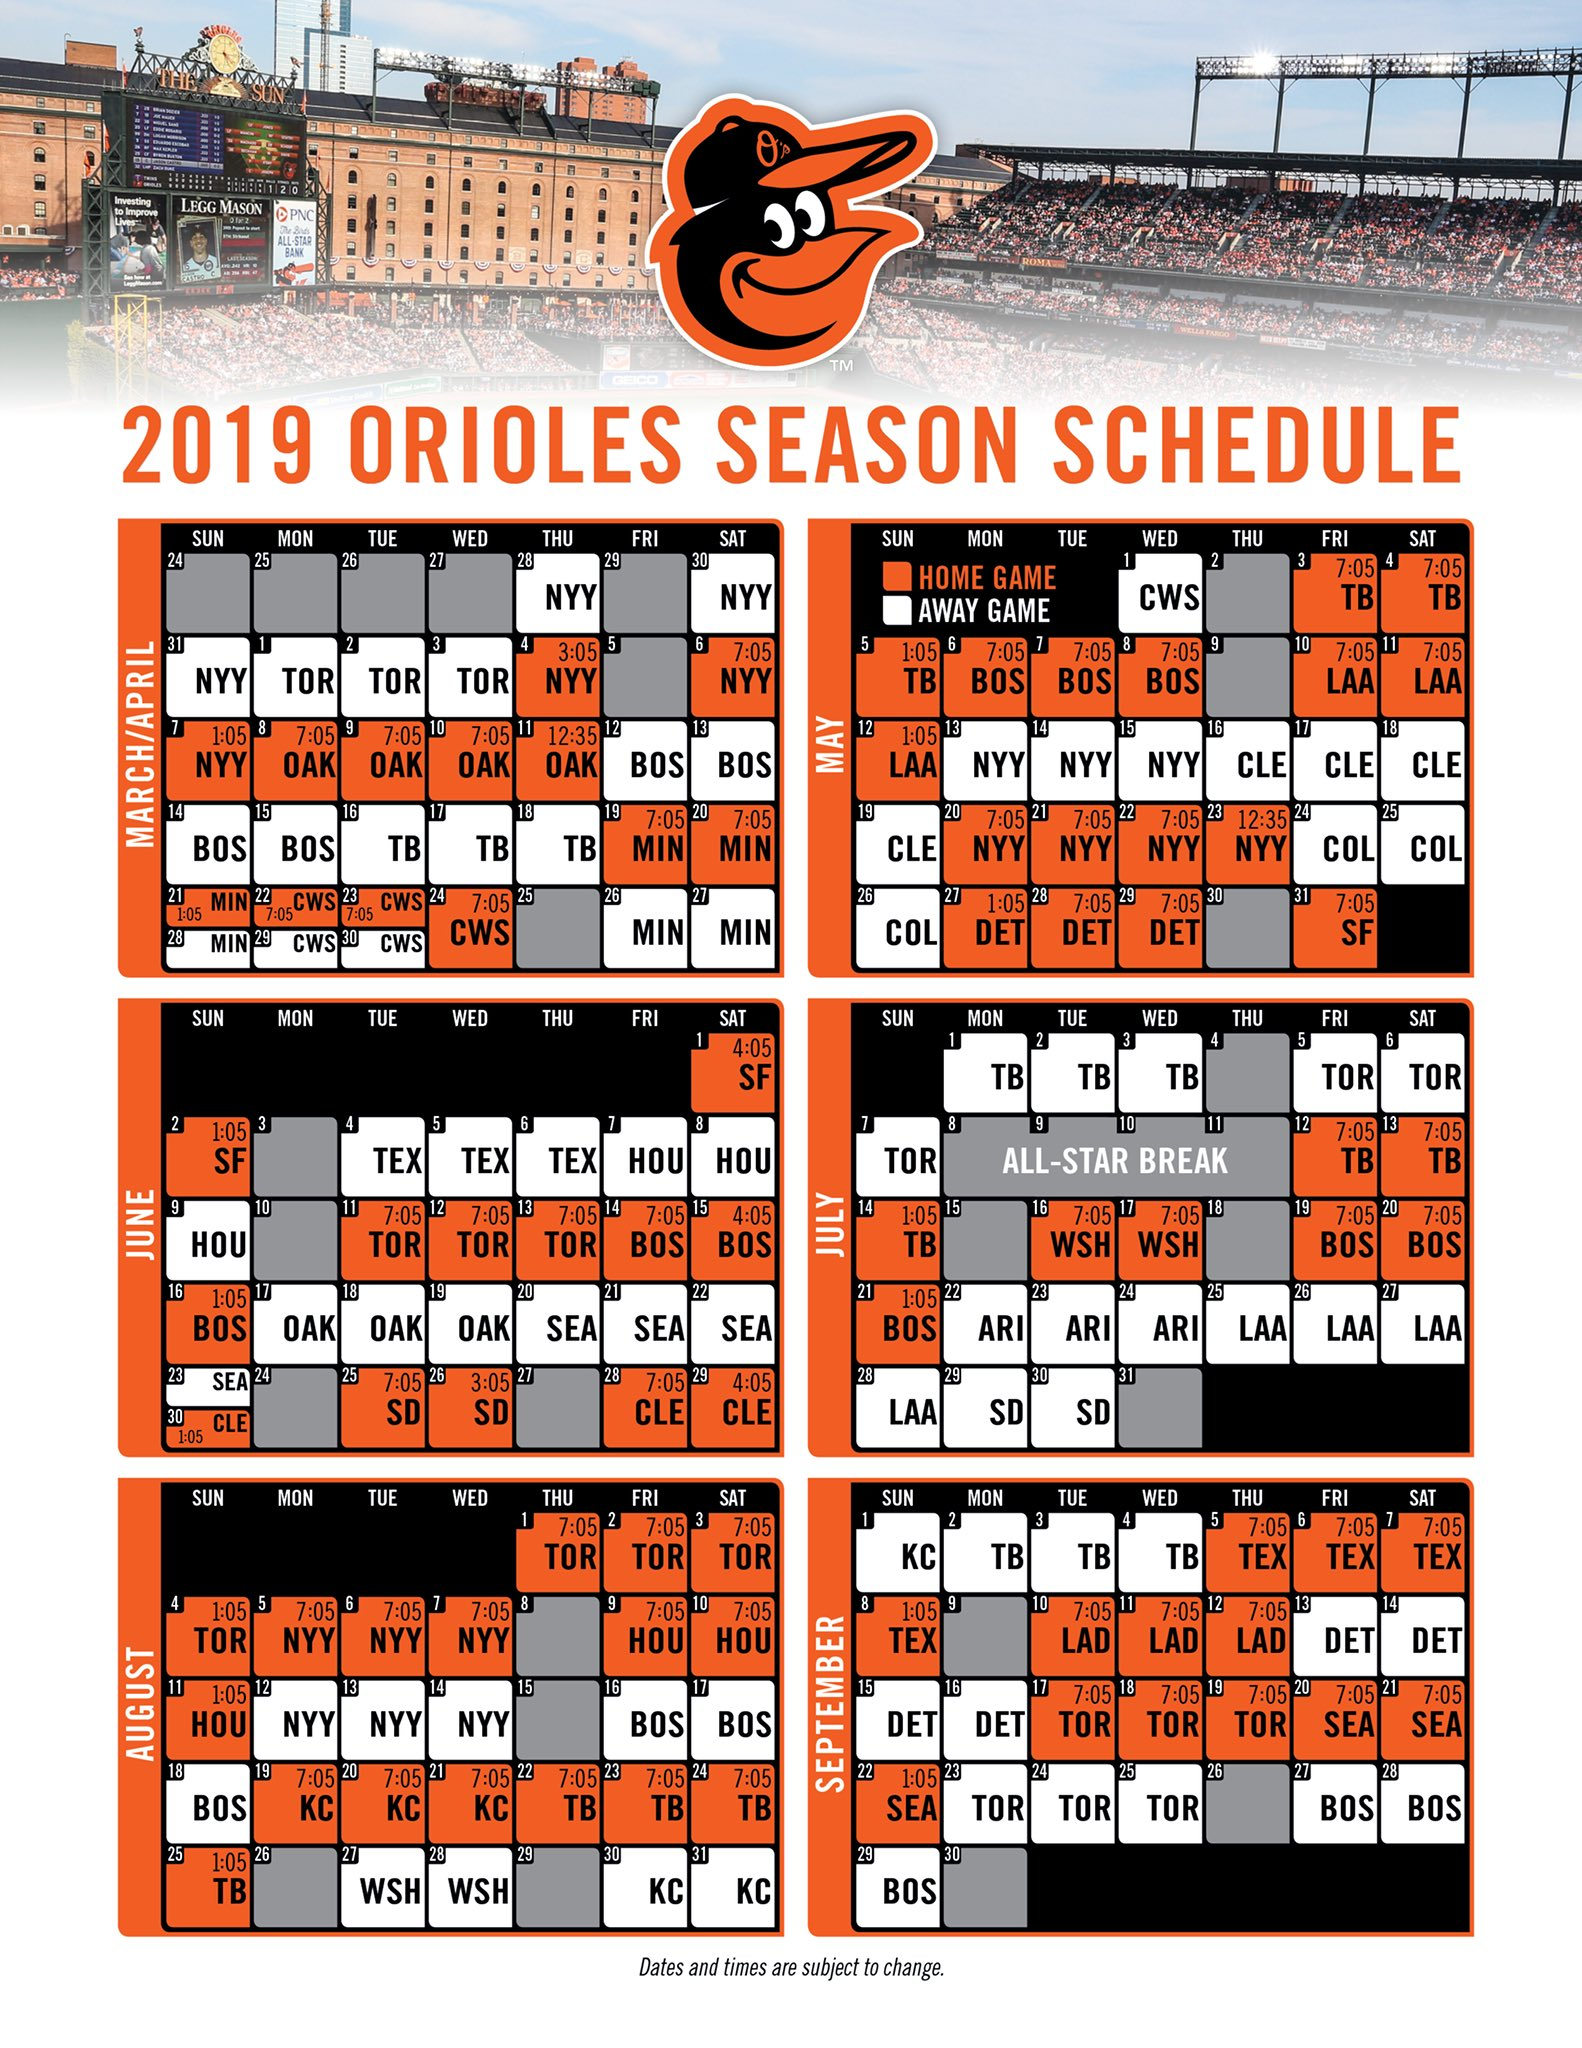 Resource image with orioles printable schedule